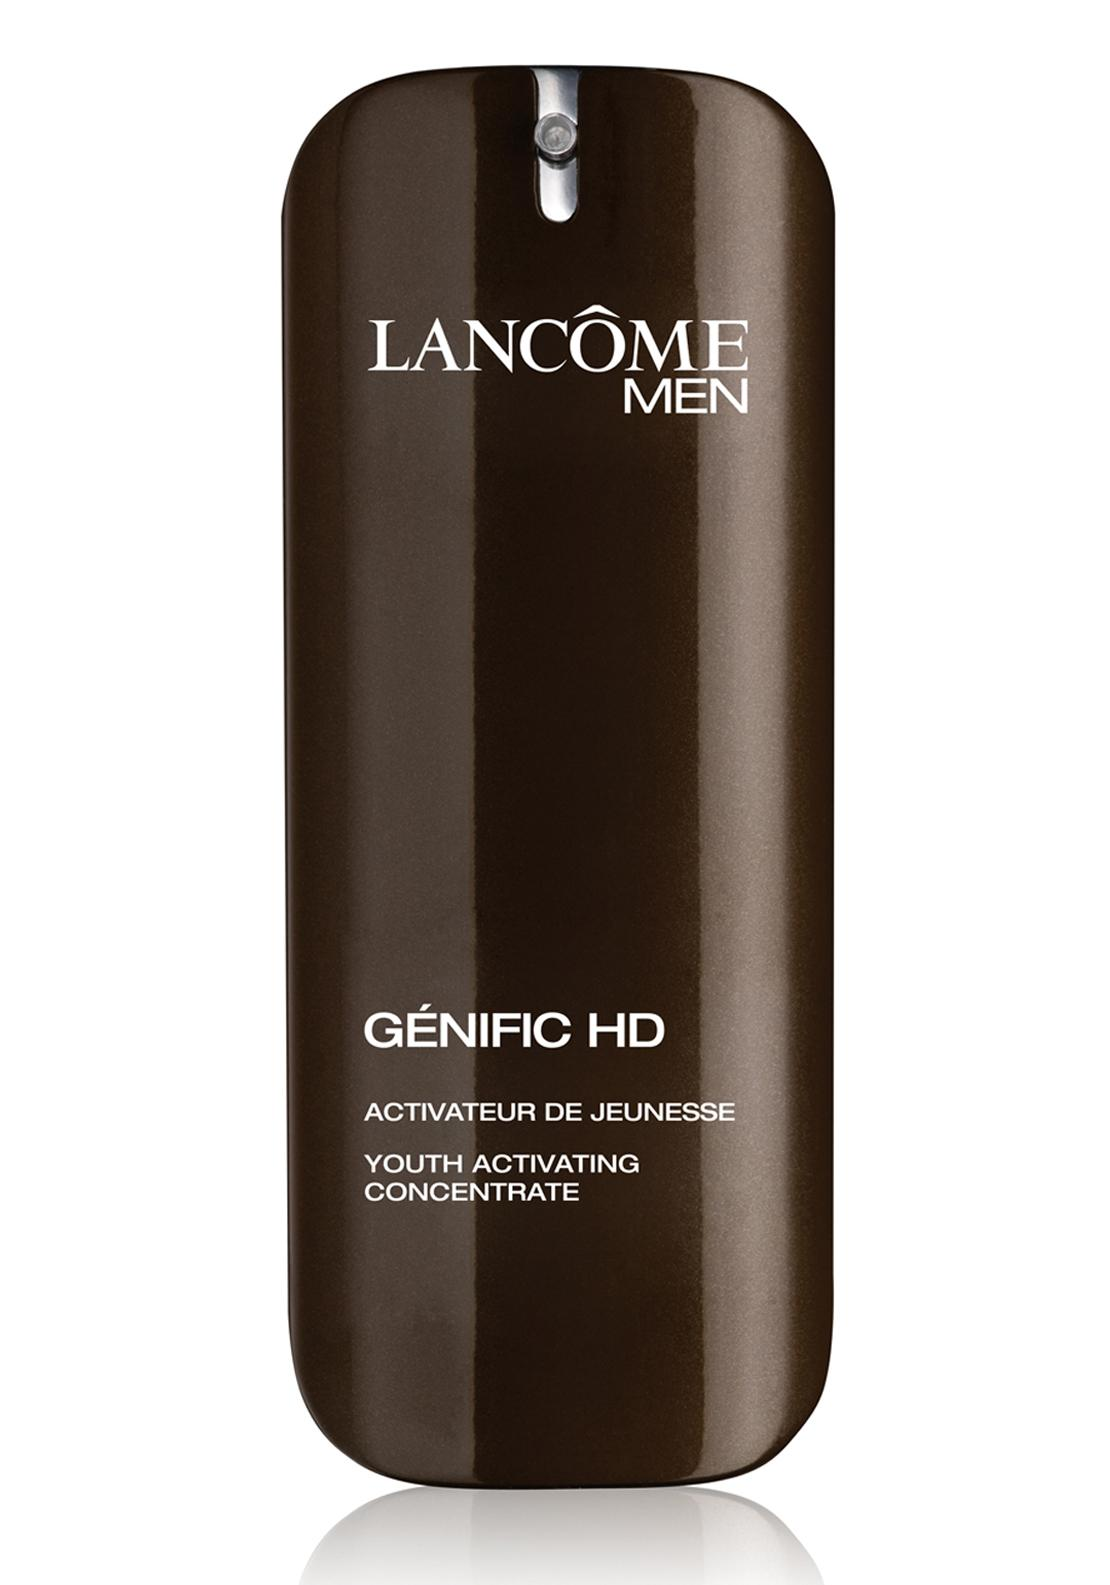 Lancôme Men Genific HD Youth Activating Concentrate 50ml